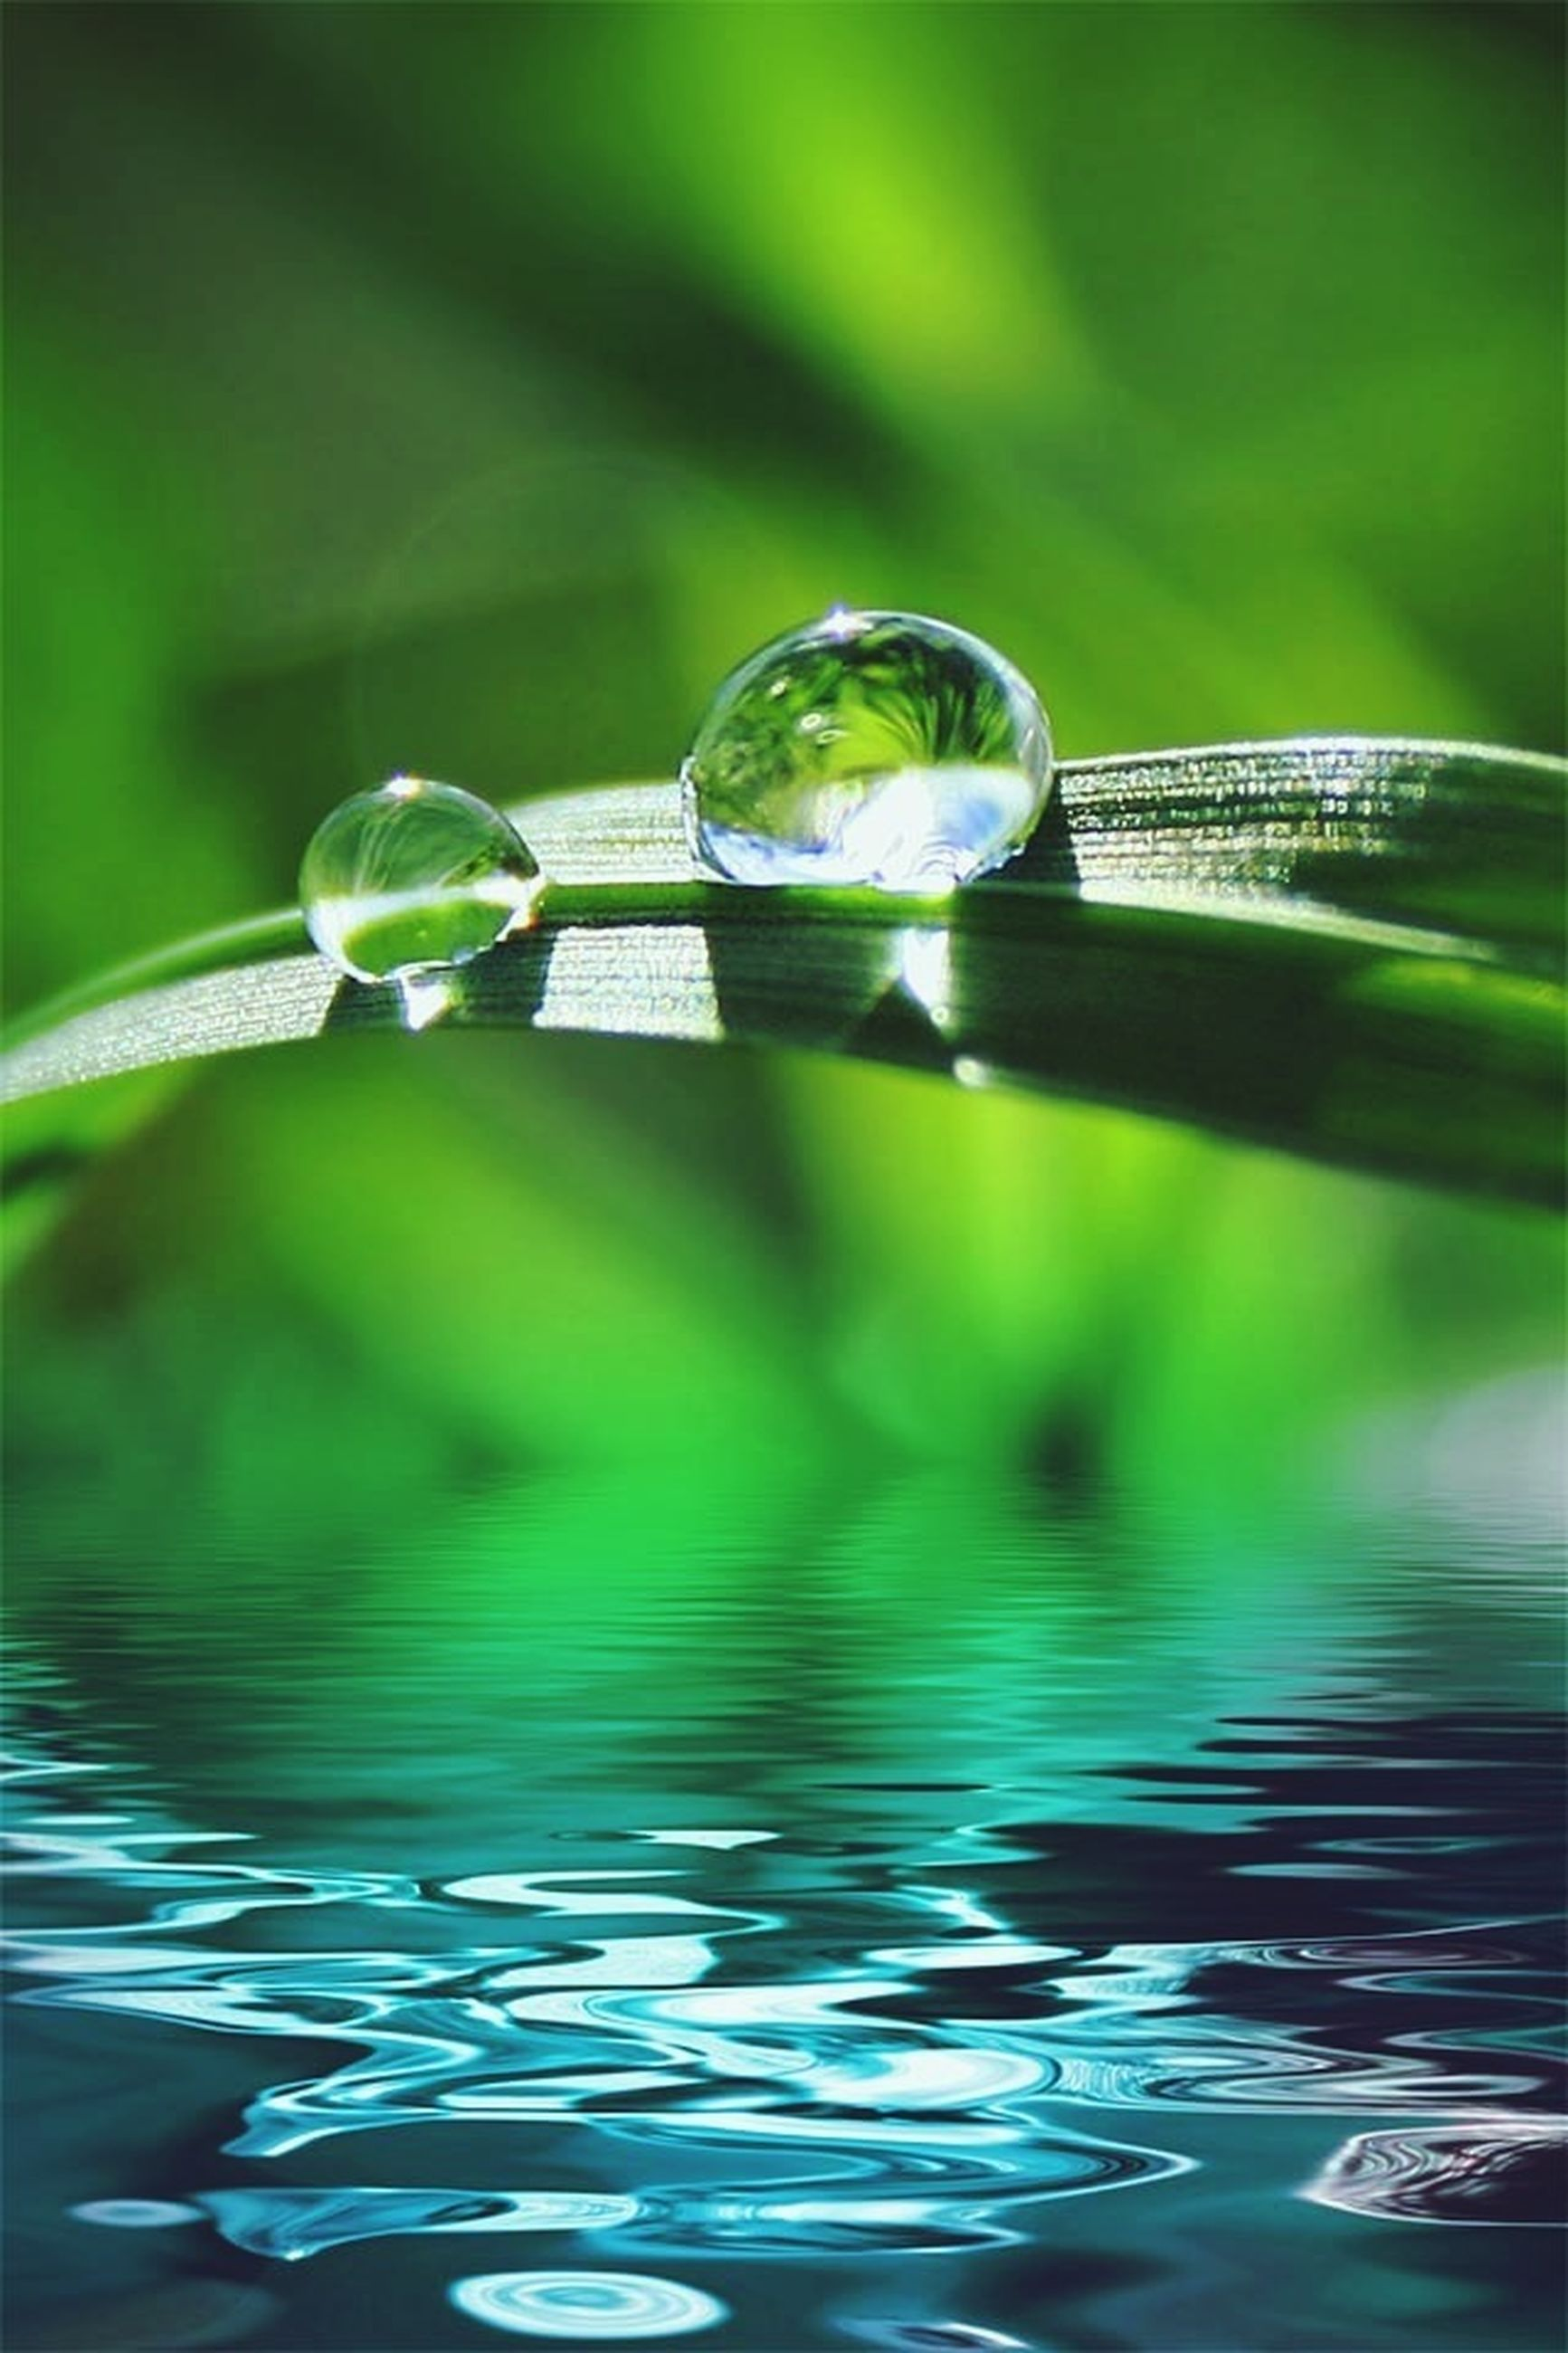 water, drop, close-up, freshness, reflection, focus on foreground, transparent, refreshment, fragility, purity, bubble, green color, selective focus, waterfront, wet, nature, liquid, motion, drink, drinking glass